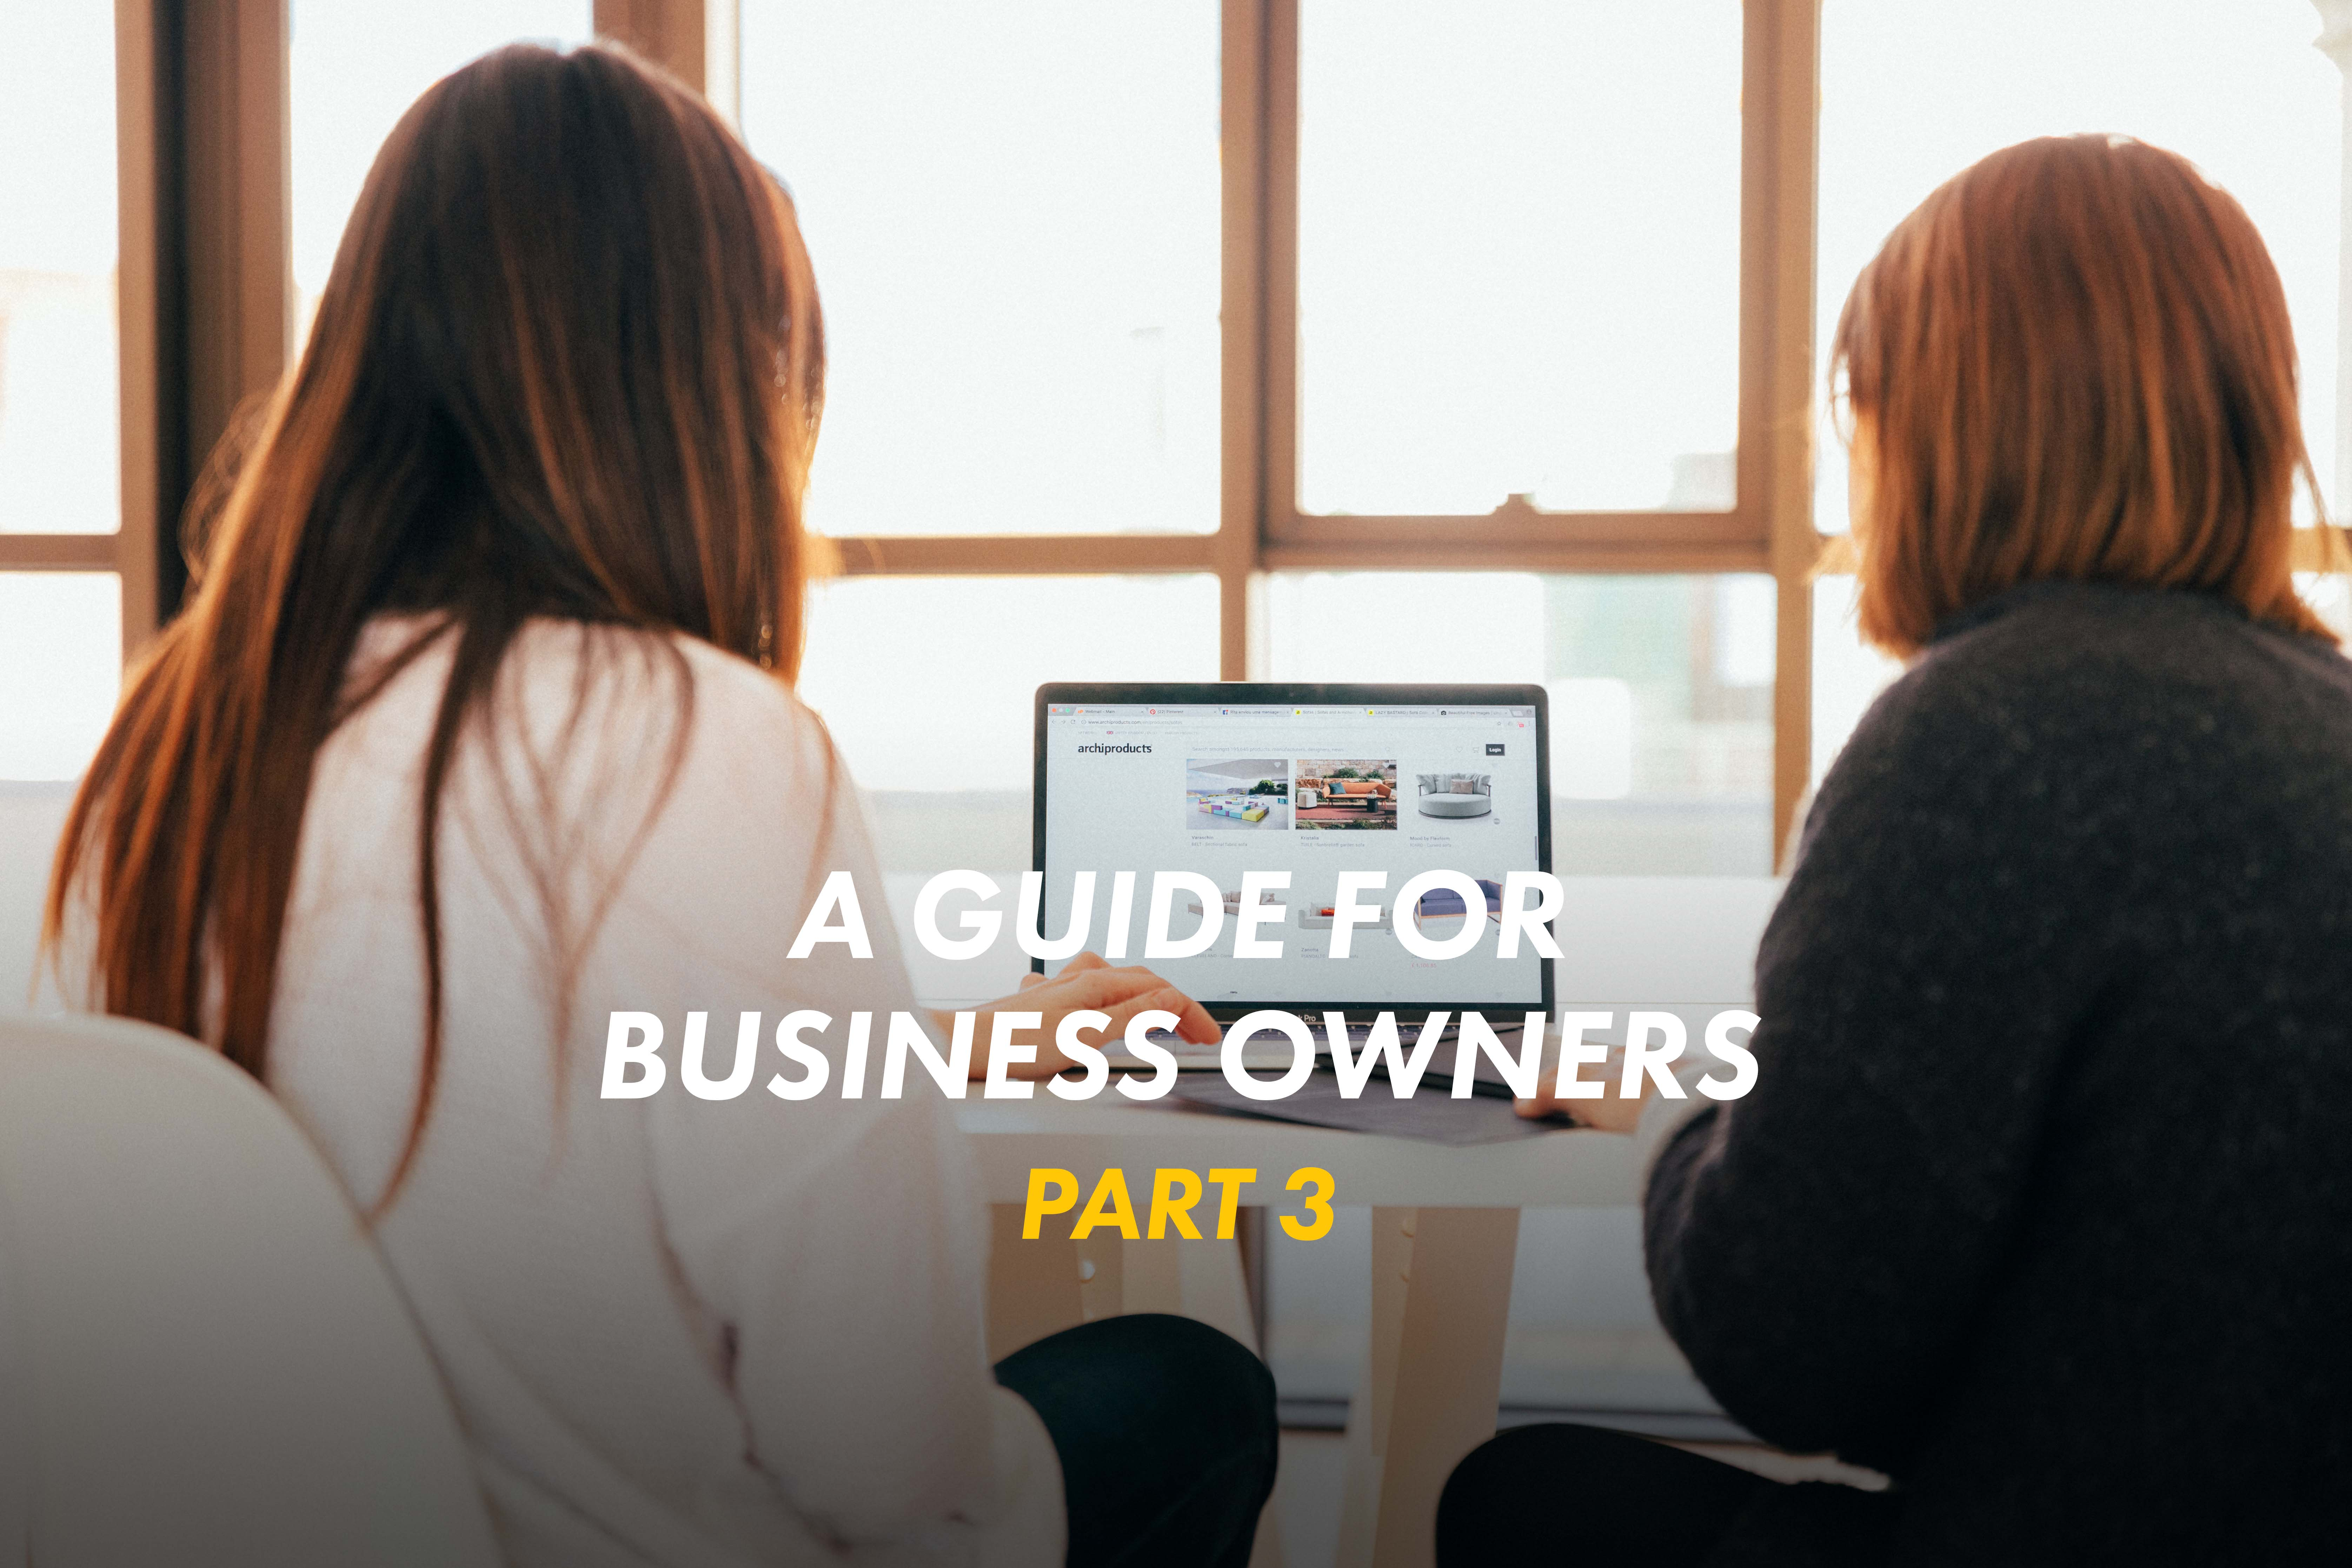 The First Wealth Guide for Business Owners – Part 3